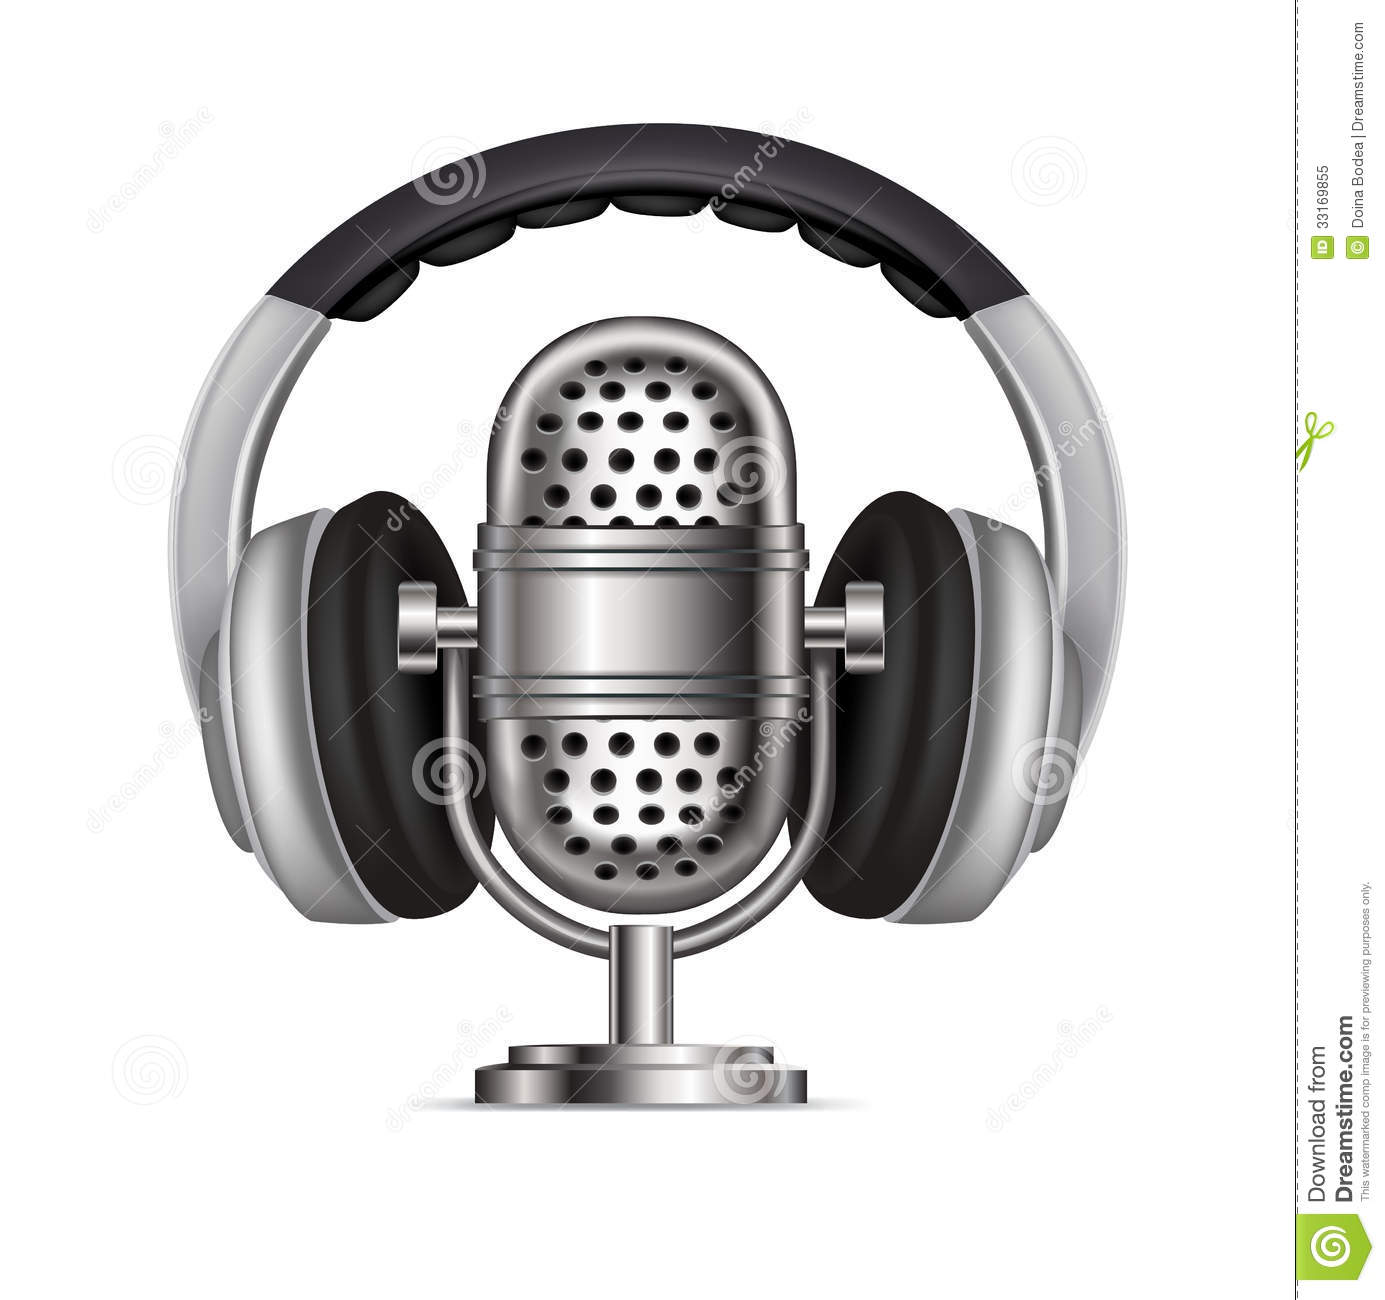 Headphones And Radio Microphone Isolated Royalty Free Stock Photo Image 33169855